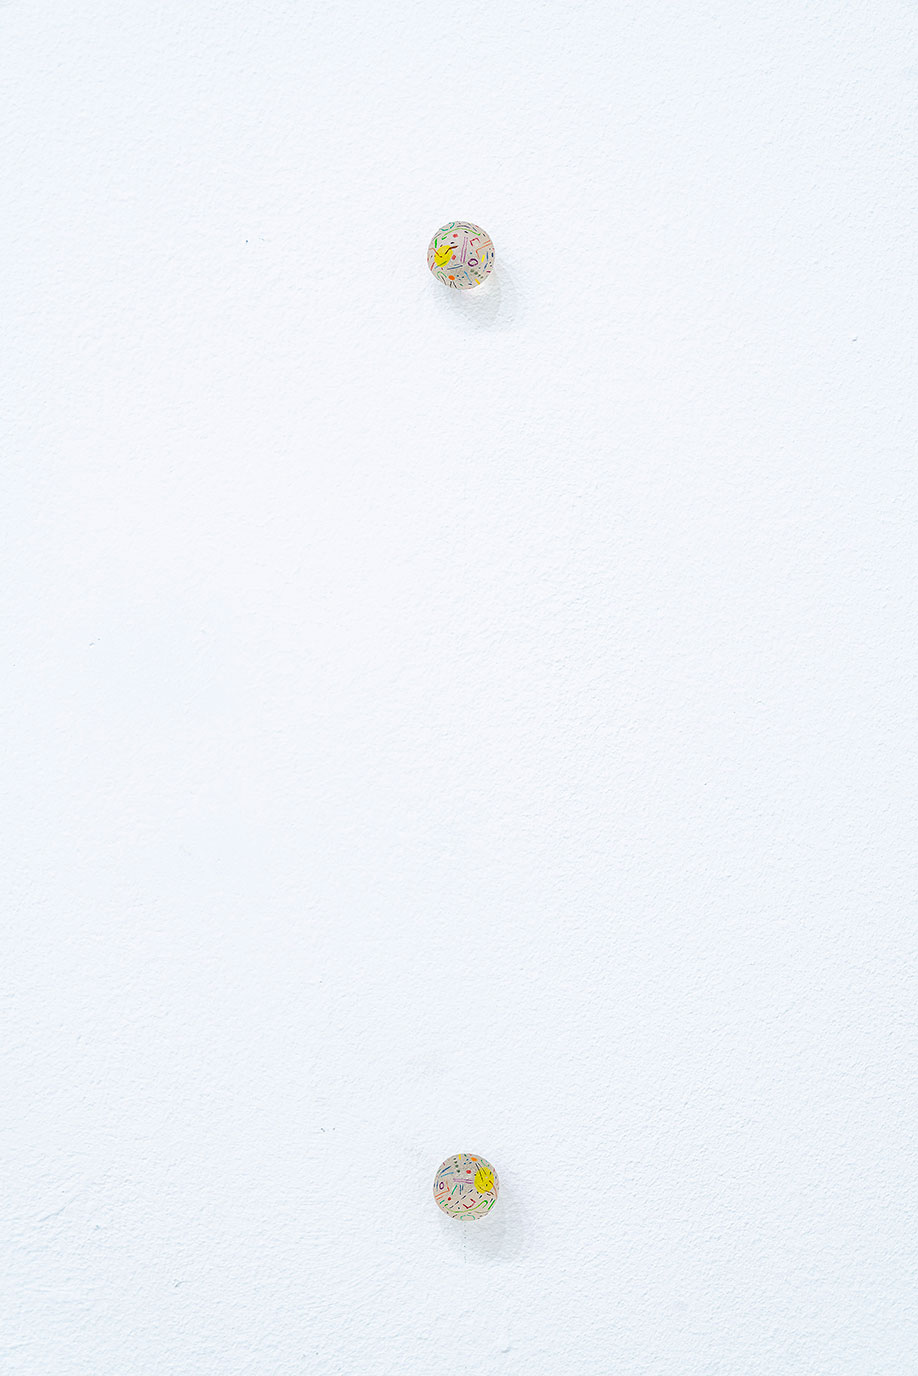 <b>Title: </b>No Title<br /><b>Year: </b>2017<br /><b>Medium: </b>Acrylic on resin 21 parts (dimensions variable) <br /><b>Size: </b>Each part 19 mm diameter